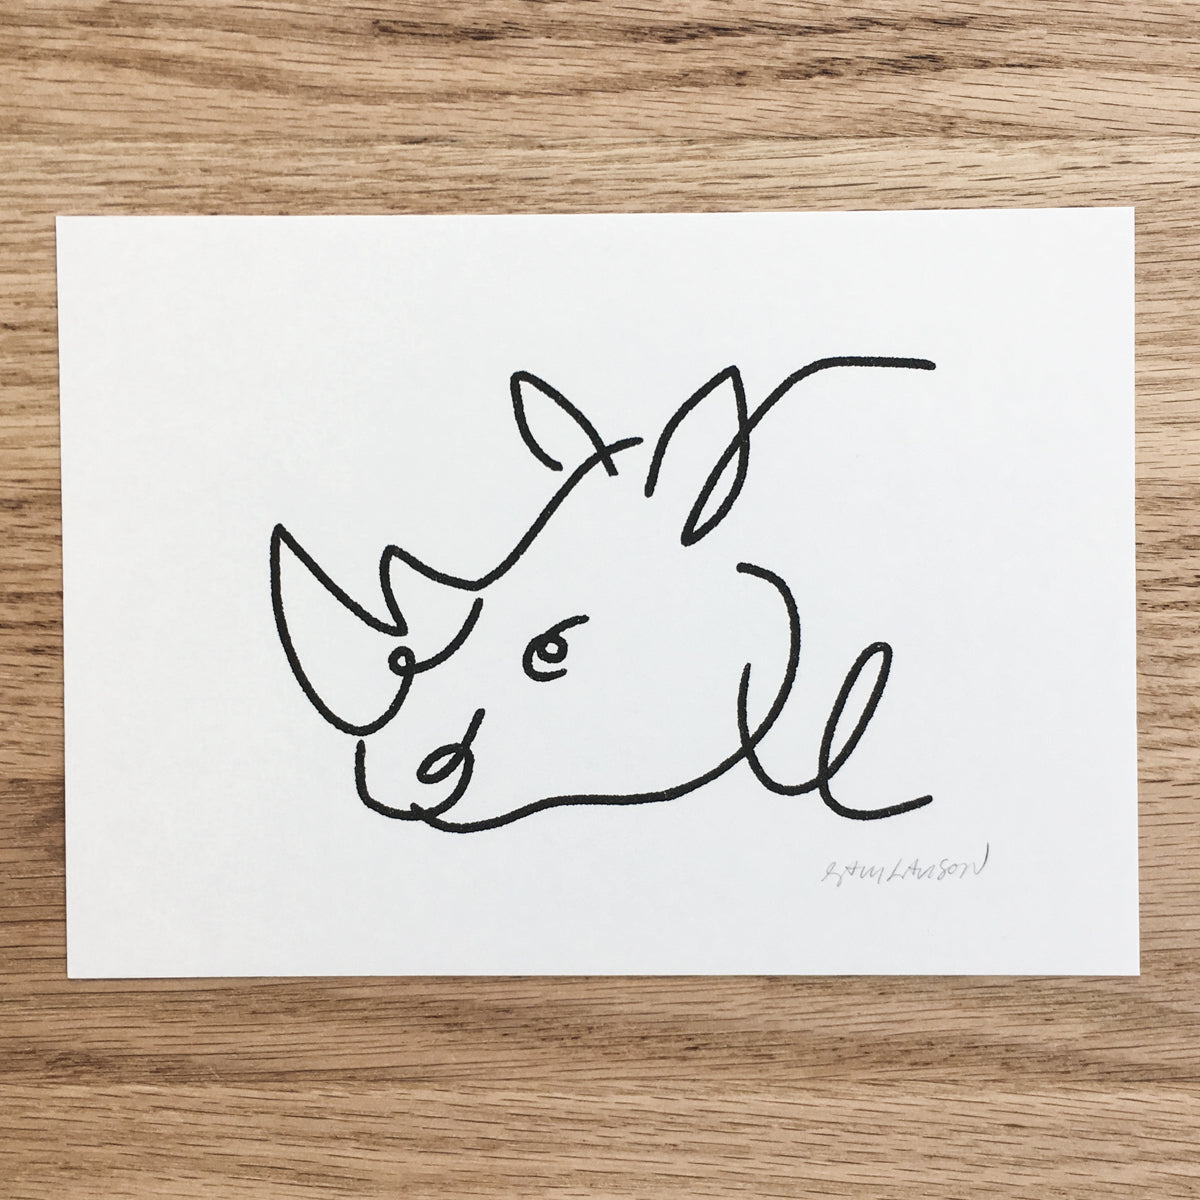 Abstract Rhino - Signed Print #115